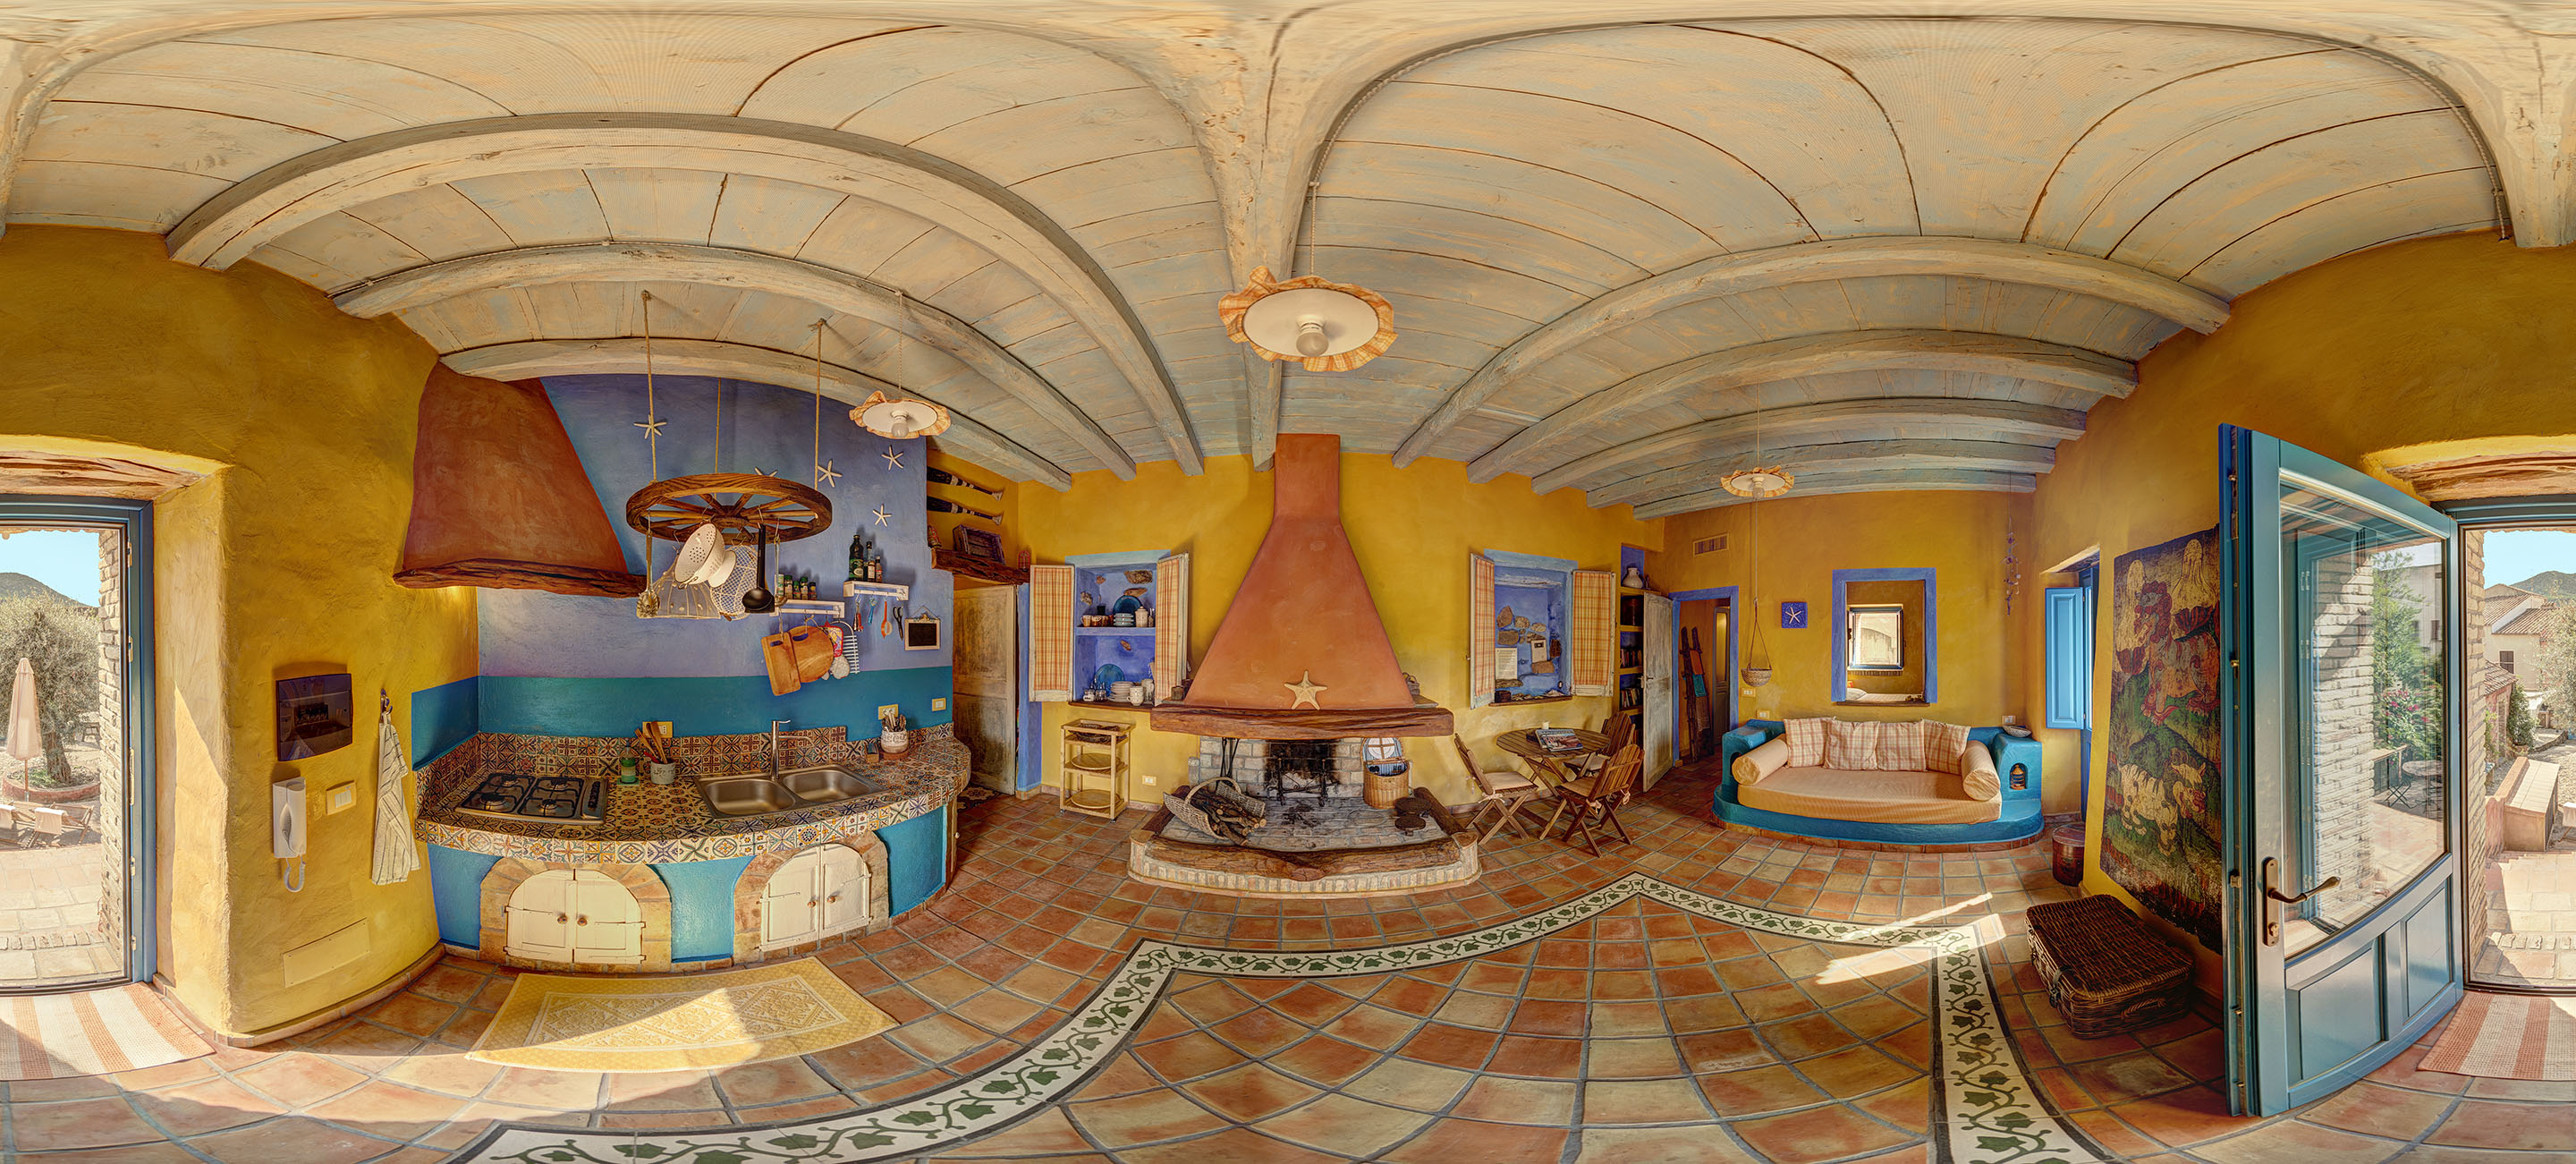 Sample of Spherical 360° x 180° Equirectangular image